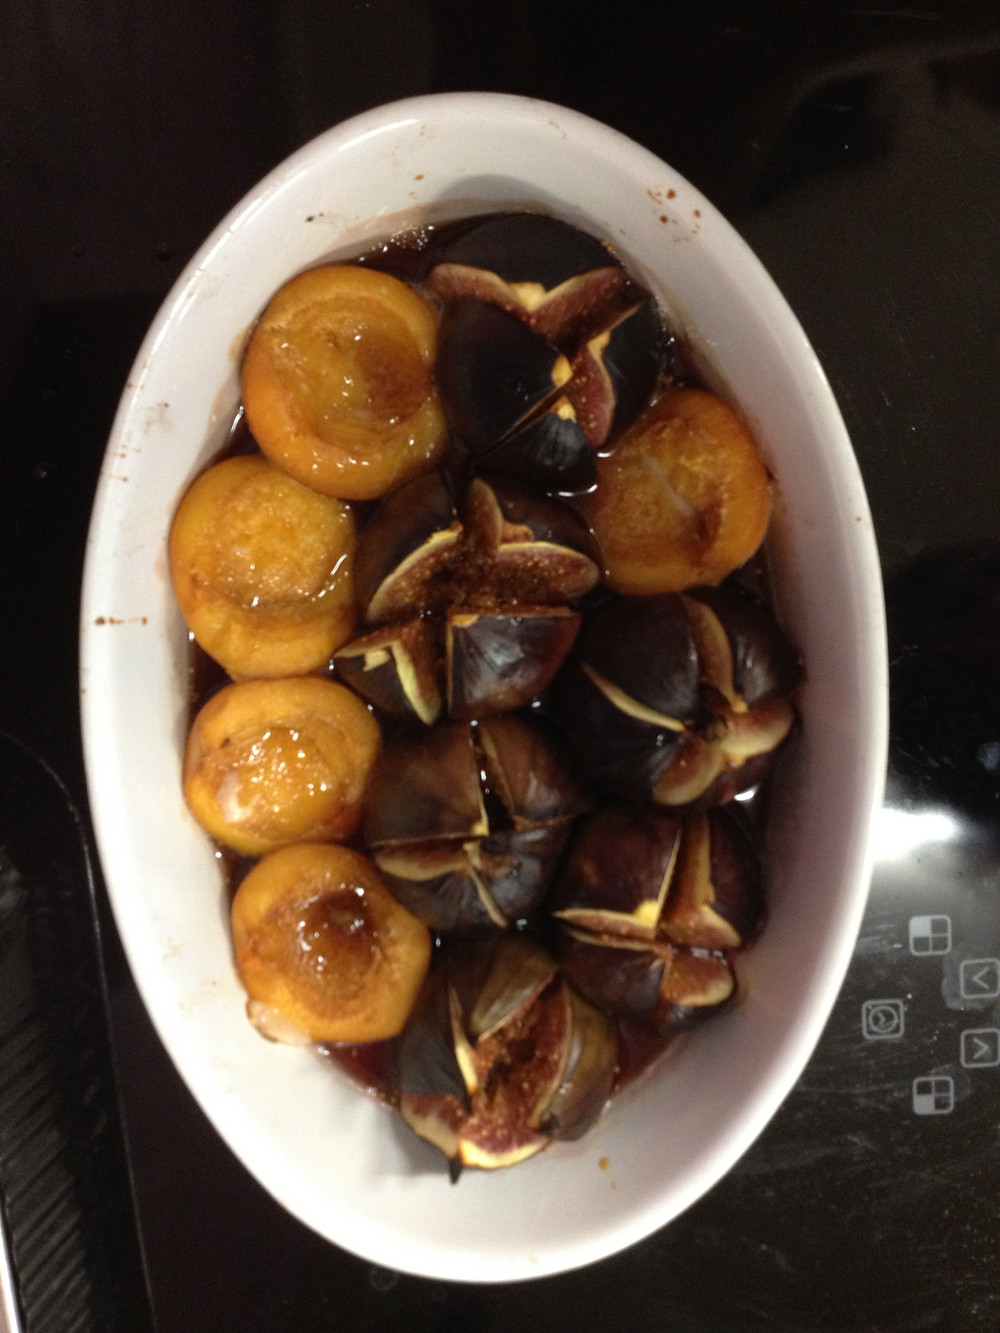 Baked figs and apricots with honey